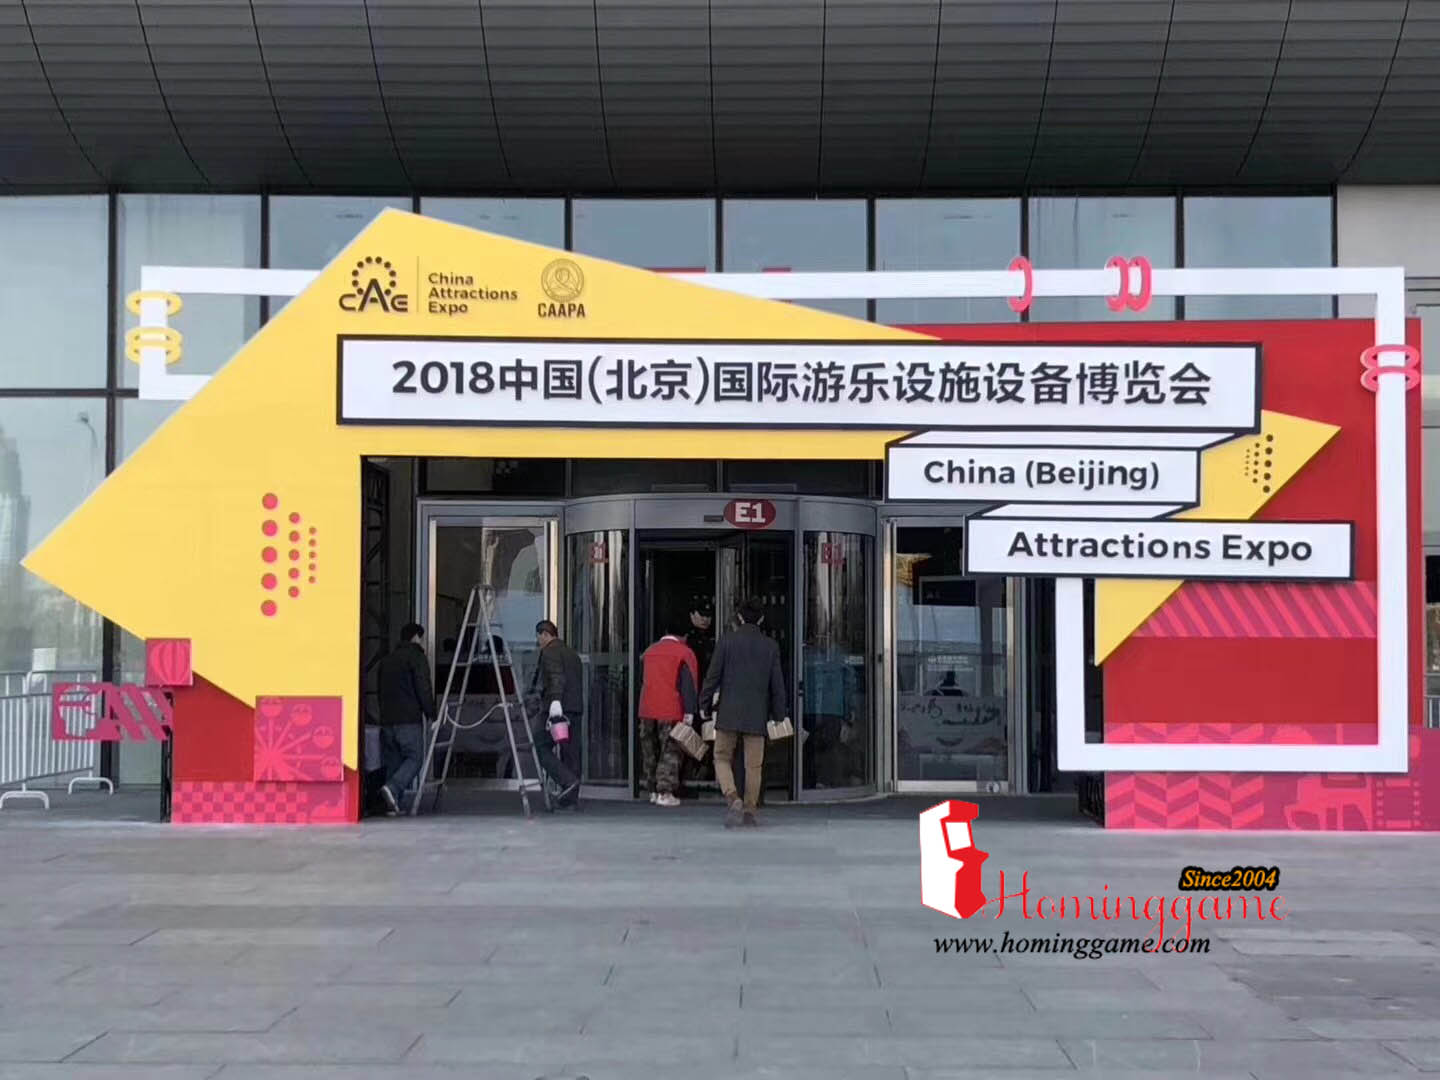 We Are in 2018 CAAPA BeiJing Game Exhibition Show,CAAPA,game show,game exhibition show,game machine,arcade game machine,coin operated game machine,prize game machine,coin pusher,simulator game machine,amusement park game equipment,family entertainment,entertainment game machine